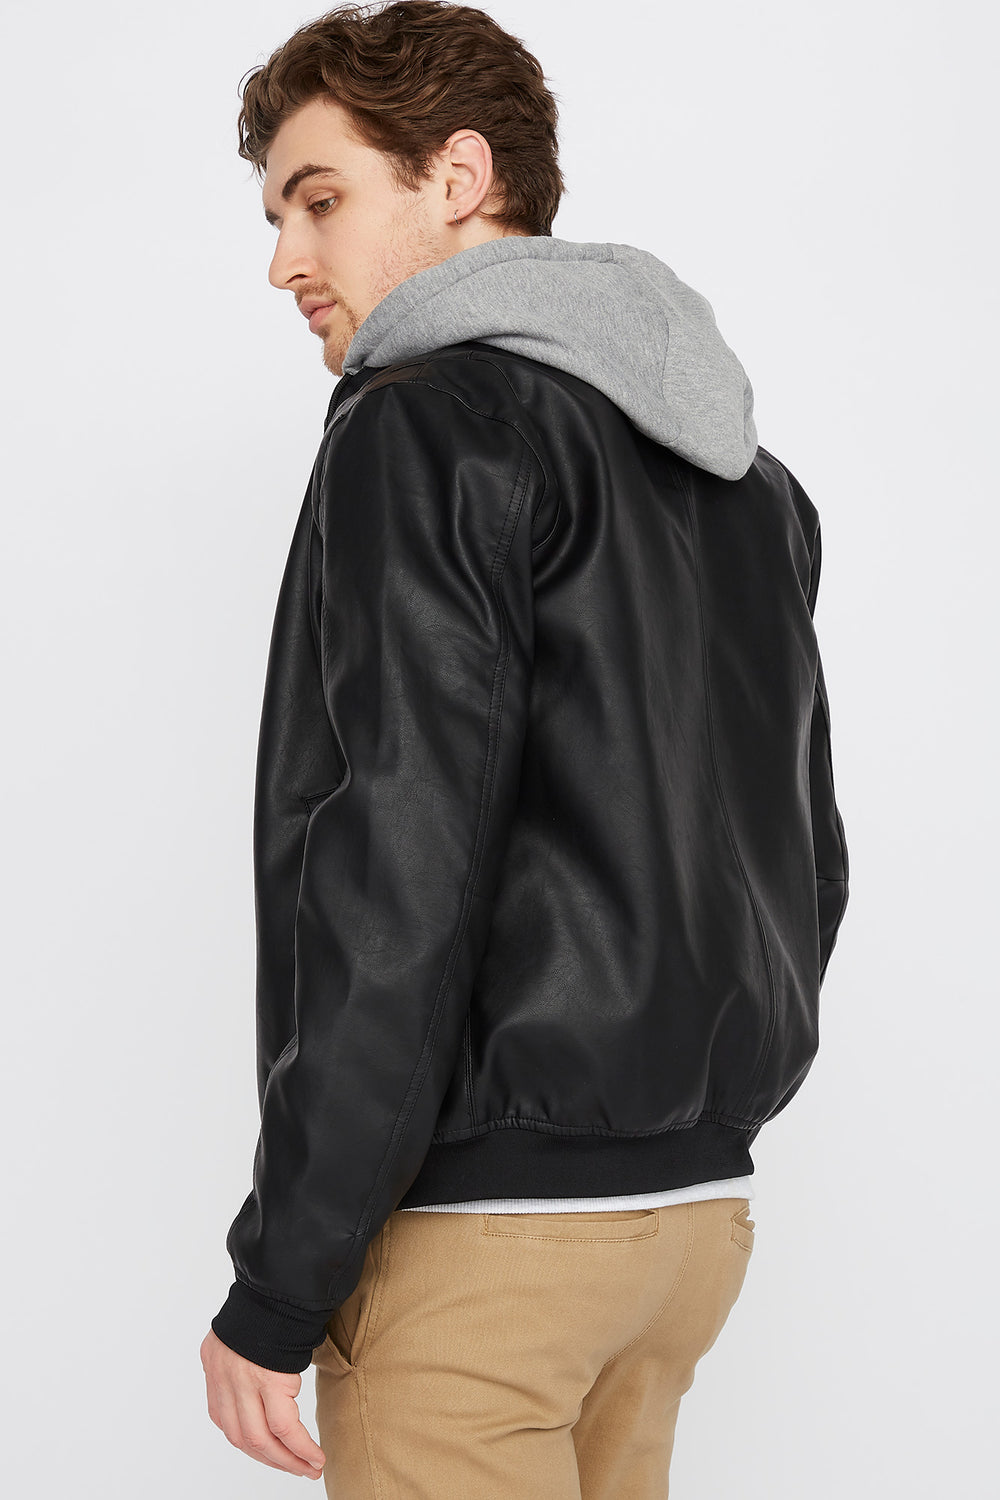 Fleece Insert Faux Leather Jacket Black